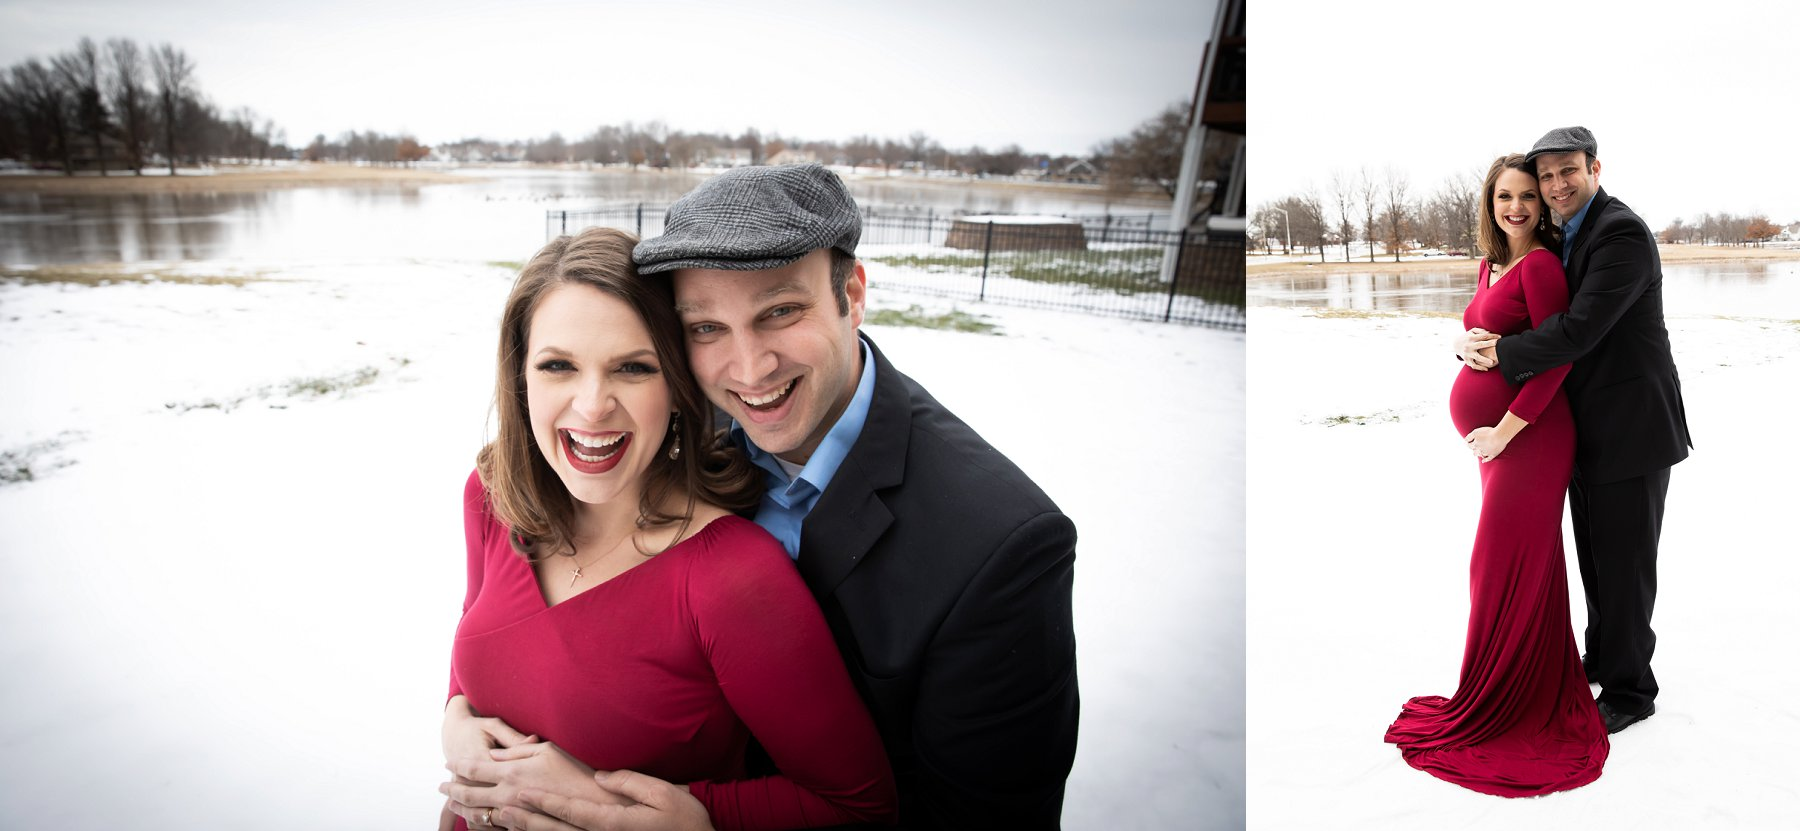 Winter Maternity Photography in Kansas City by Merry Ohler, Wedding Photographer Kansas City - 6